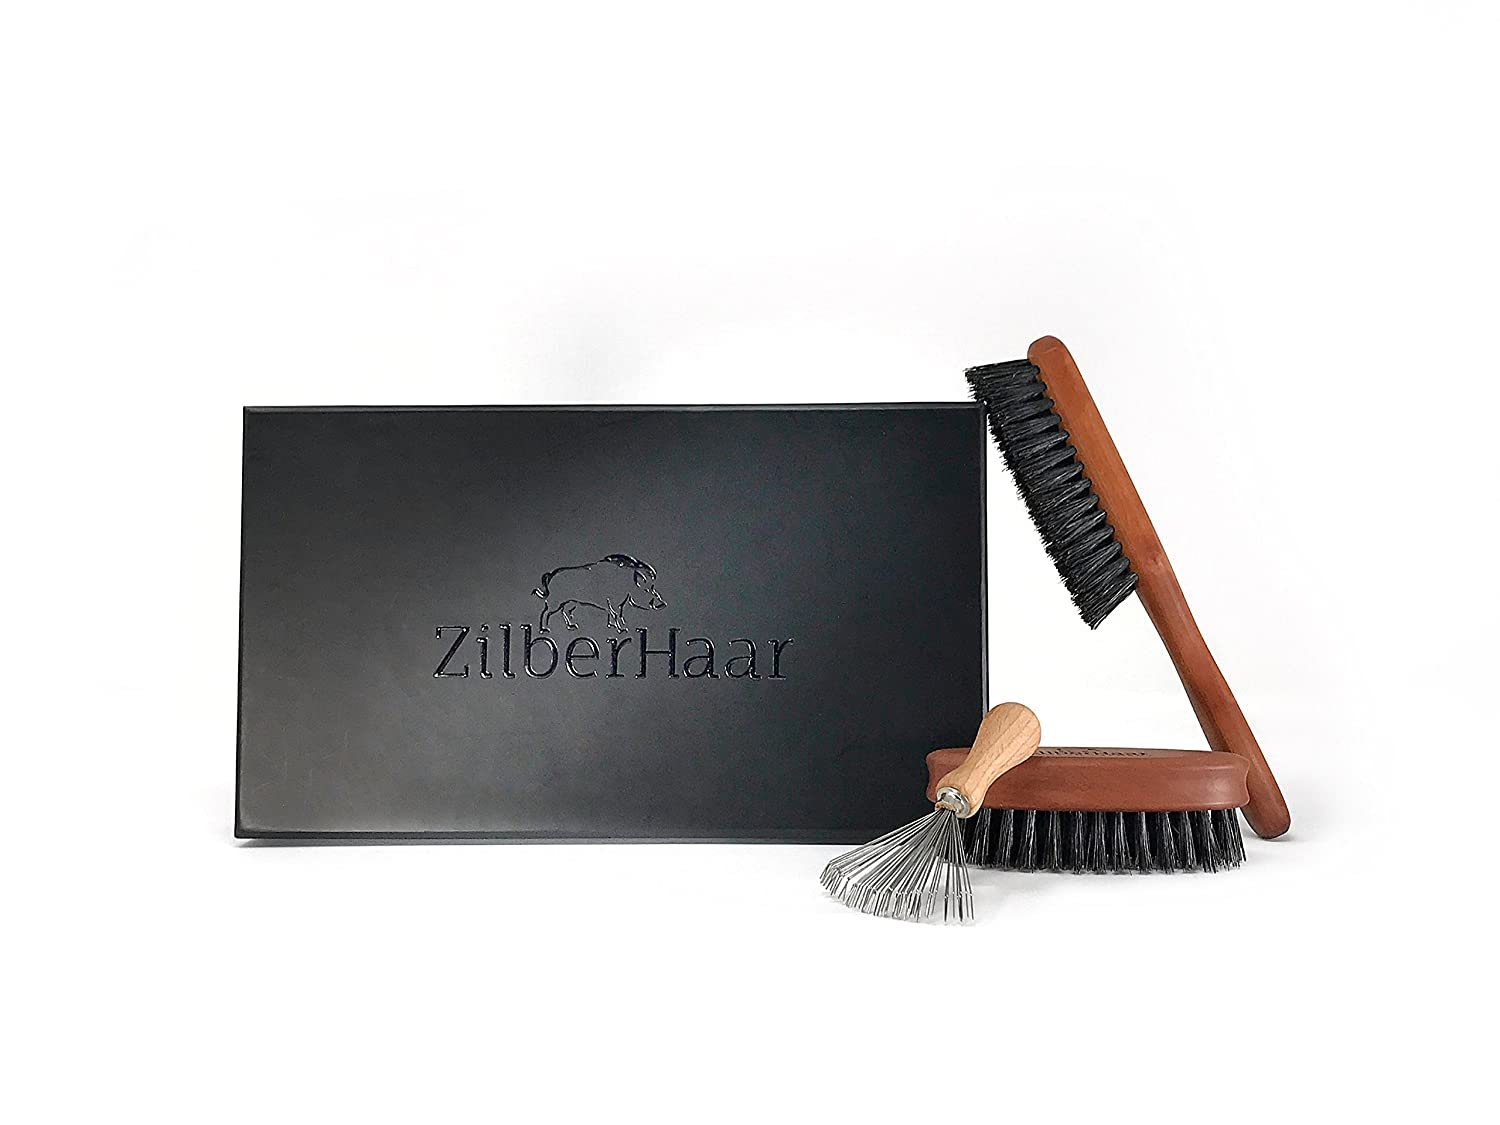 ZilberHaar Beard Brush Set with Stiff Bristles - Original Beard Brush - Pocket Beard Brush - comes with Beard Brush Cleaning Tool Damaanda